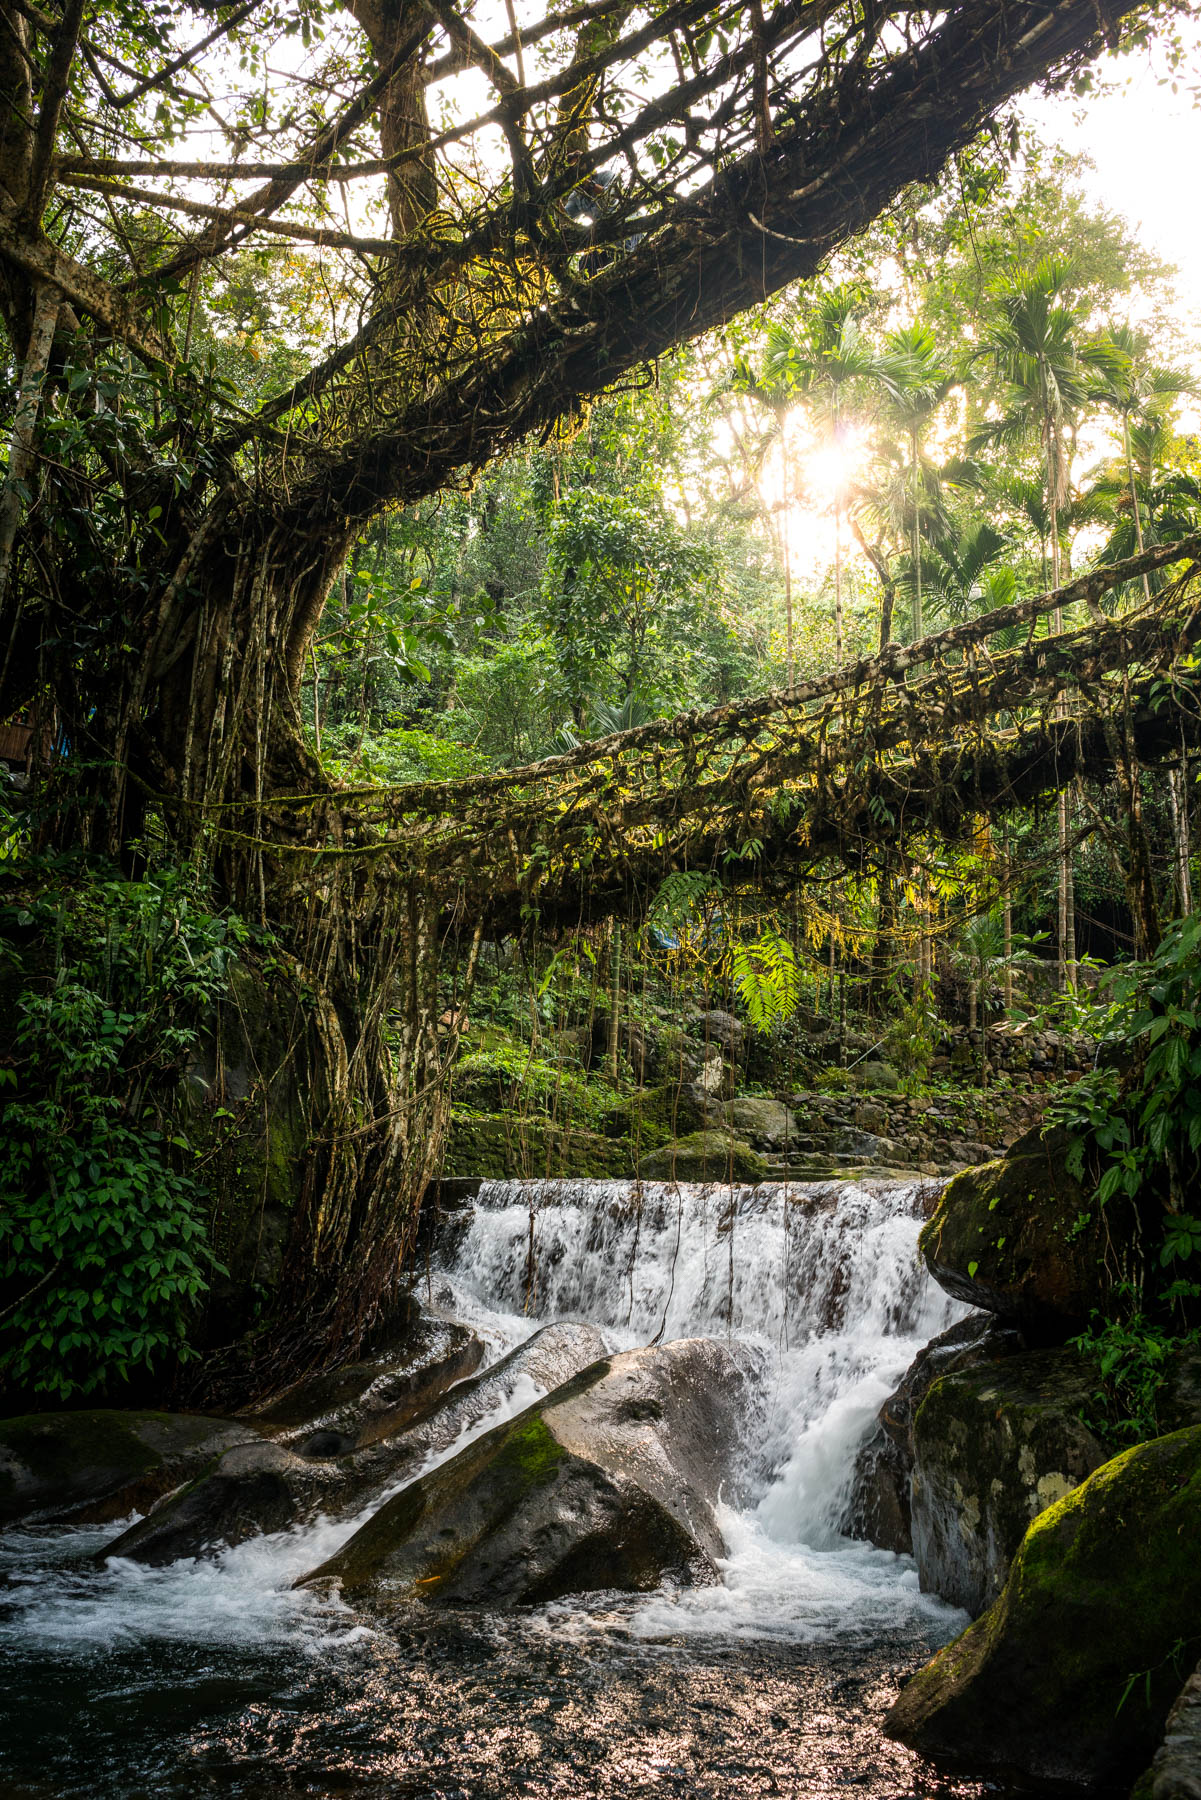 The Umshiang double-decker living root bridge near Nongriat village in Meghalaya state, India. The bridge is made from the roots of rubber trees, carefully guided across the expanse with betel nut tree trunks over several decades.